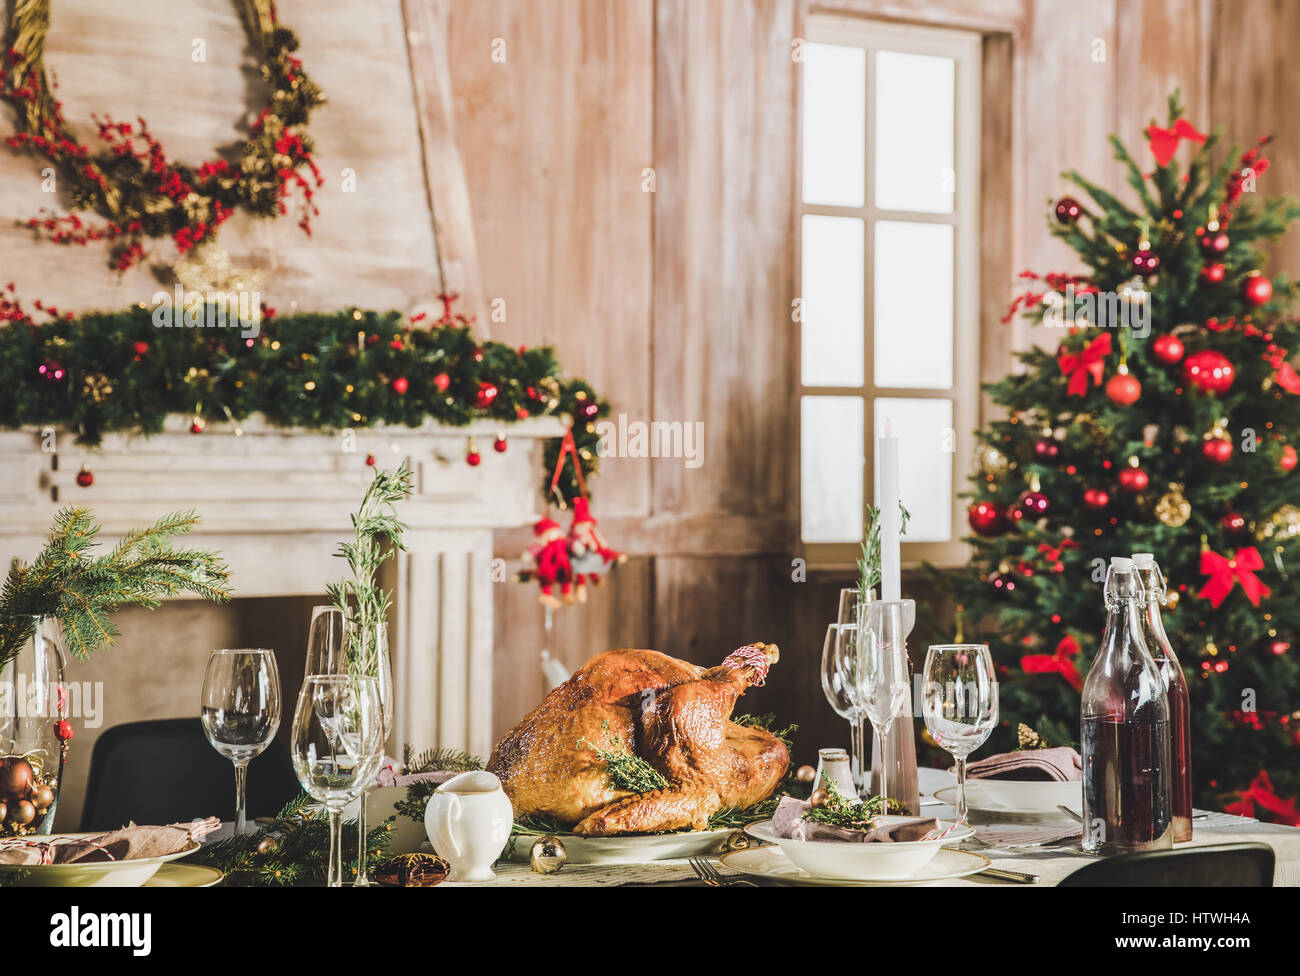 Delicious roasted turkey on served holiday table decorated for Christmas - Stock Image